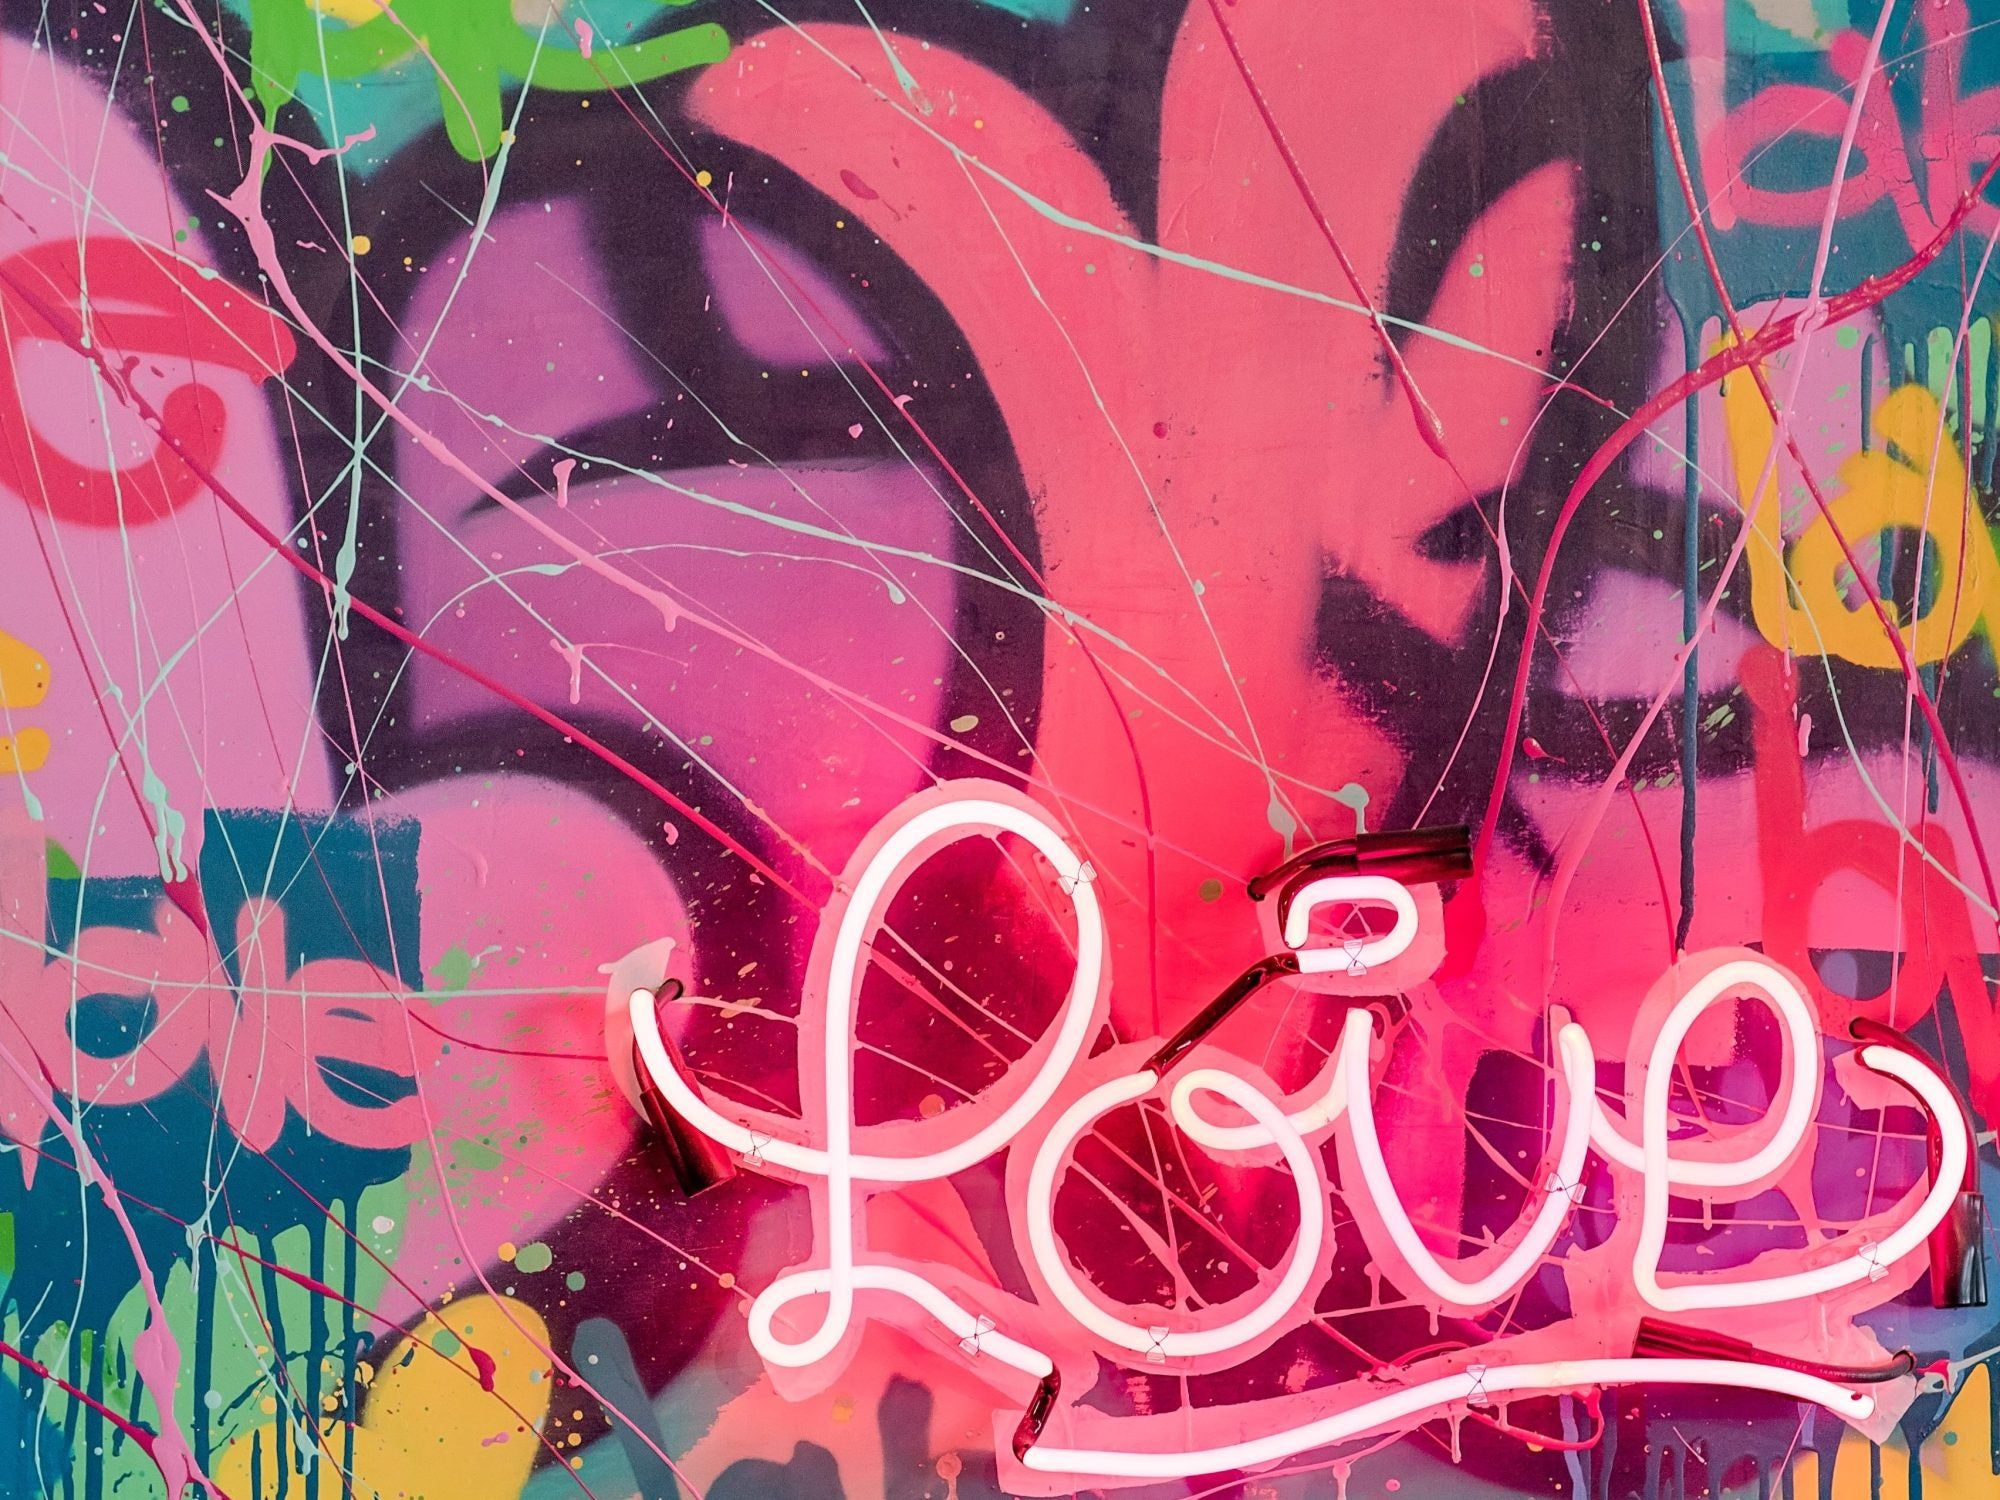 """LOVE IS ALL"": KARLOS MARQUEZ ON GRAFFITI, THE CORPORATE WORLD AND COMMUNITY LIFE"